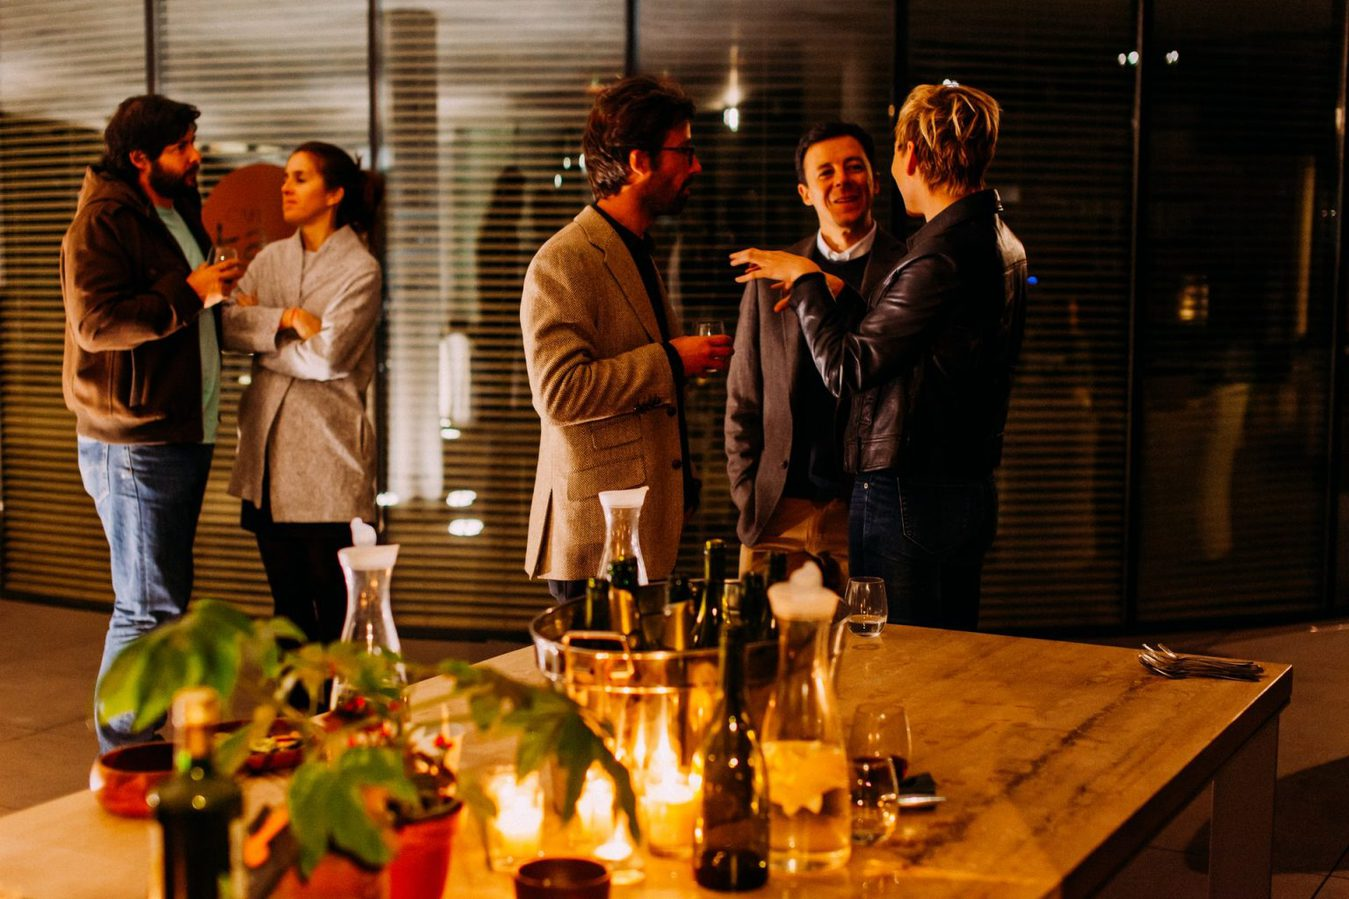 People networking in a darker room